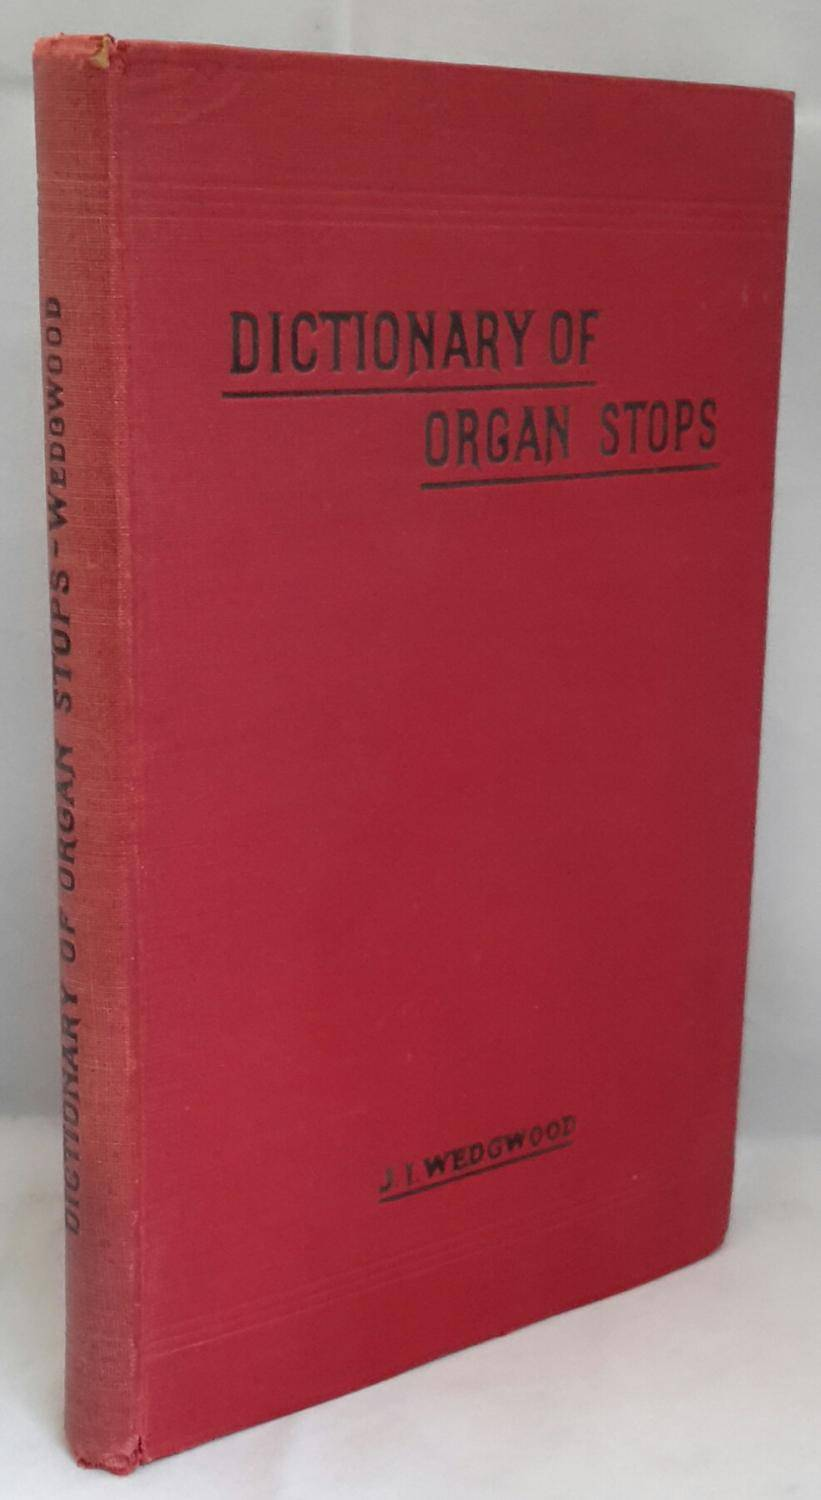 A Comprehensive Dictionary Of Organ Stops English and Foreign, Ancient and Modern: Practical, Theoretical, Historical, Aesthetic, Etymological, Phone